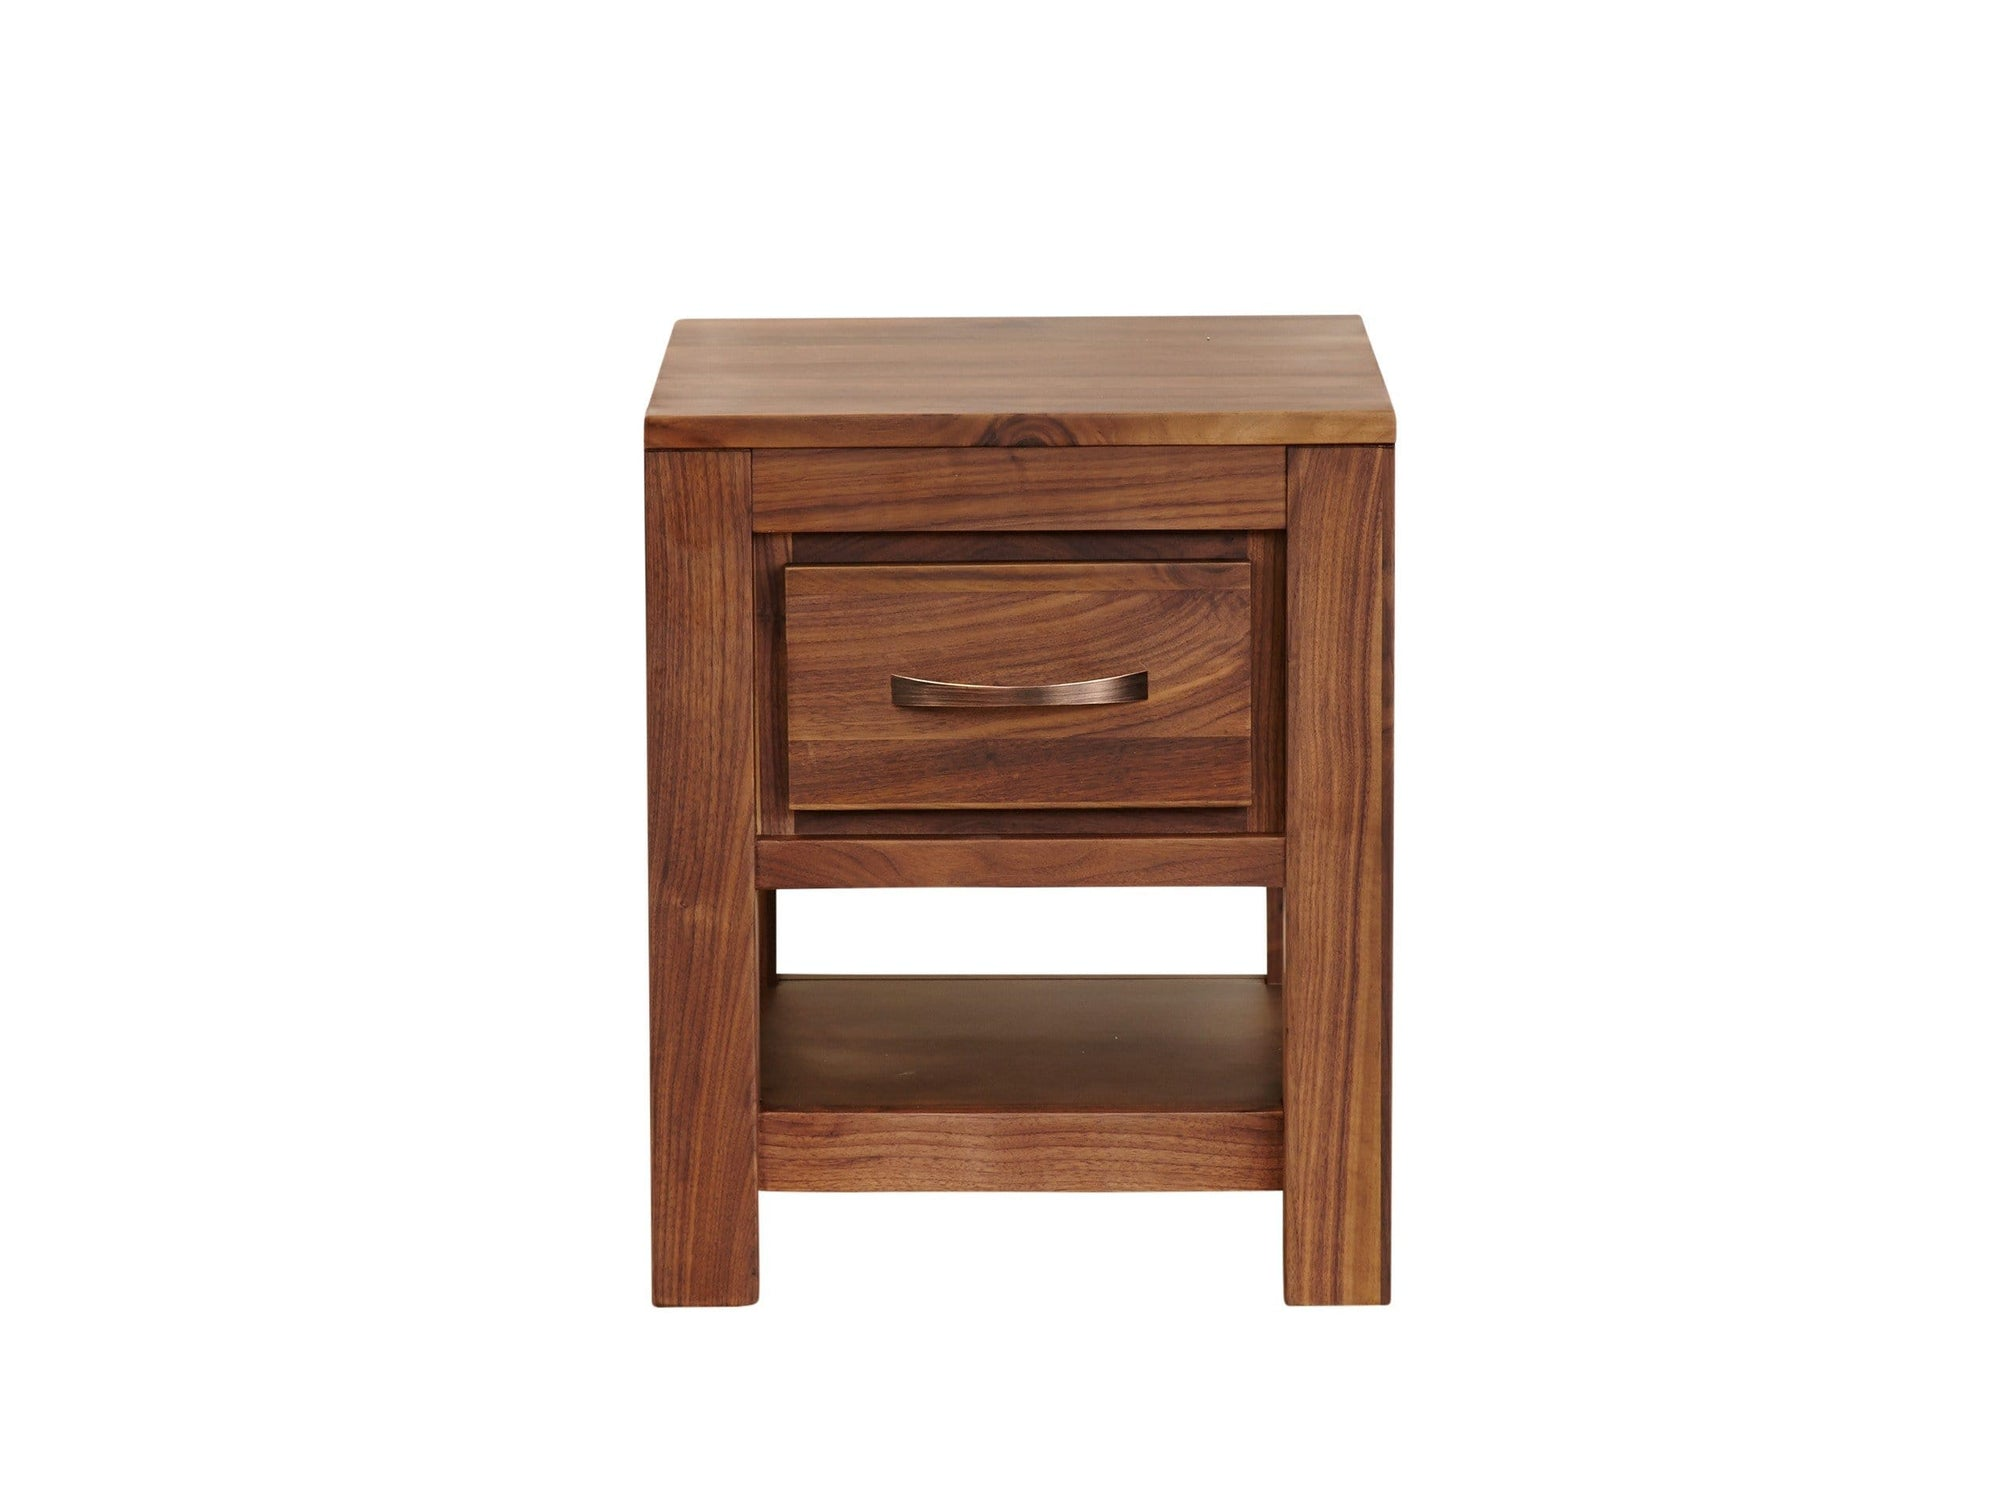 Small walnut table, for living areas or bedsides. Includes small drawer and lower shelf.